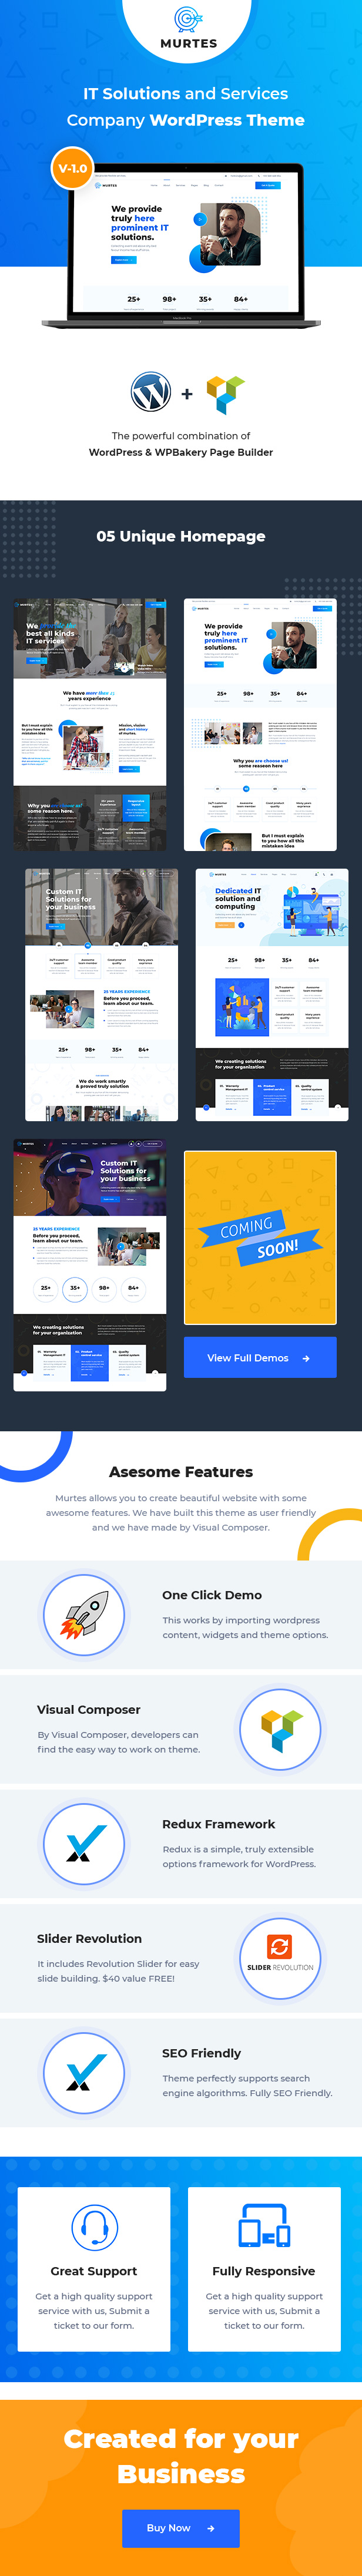 IT Solutions and Services Company WordPress